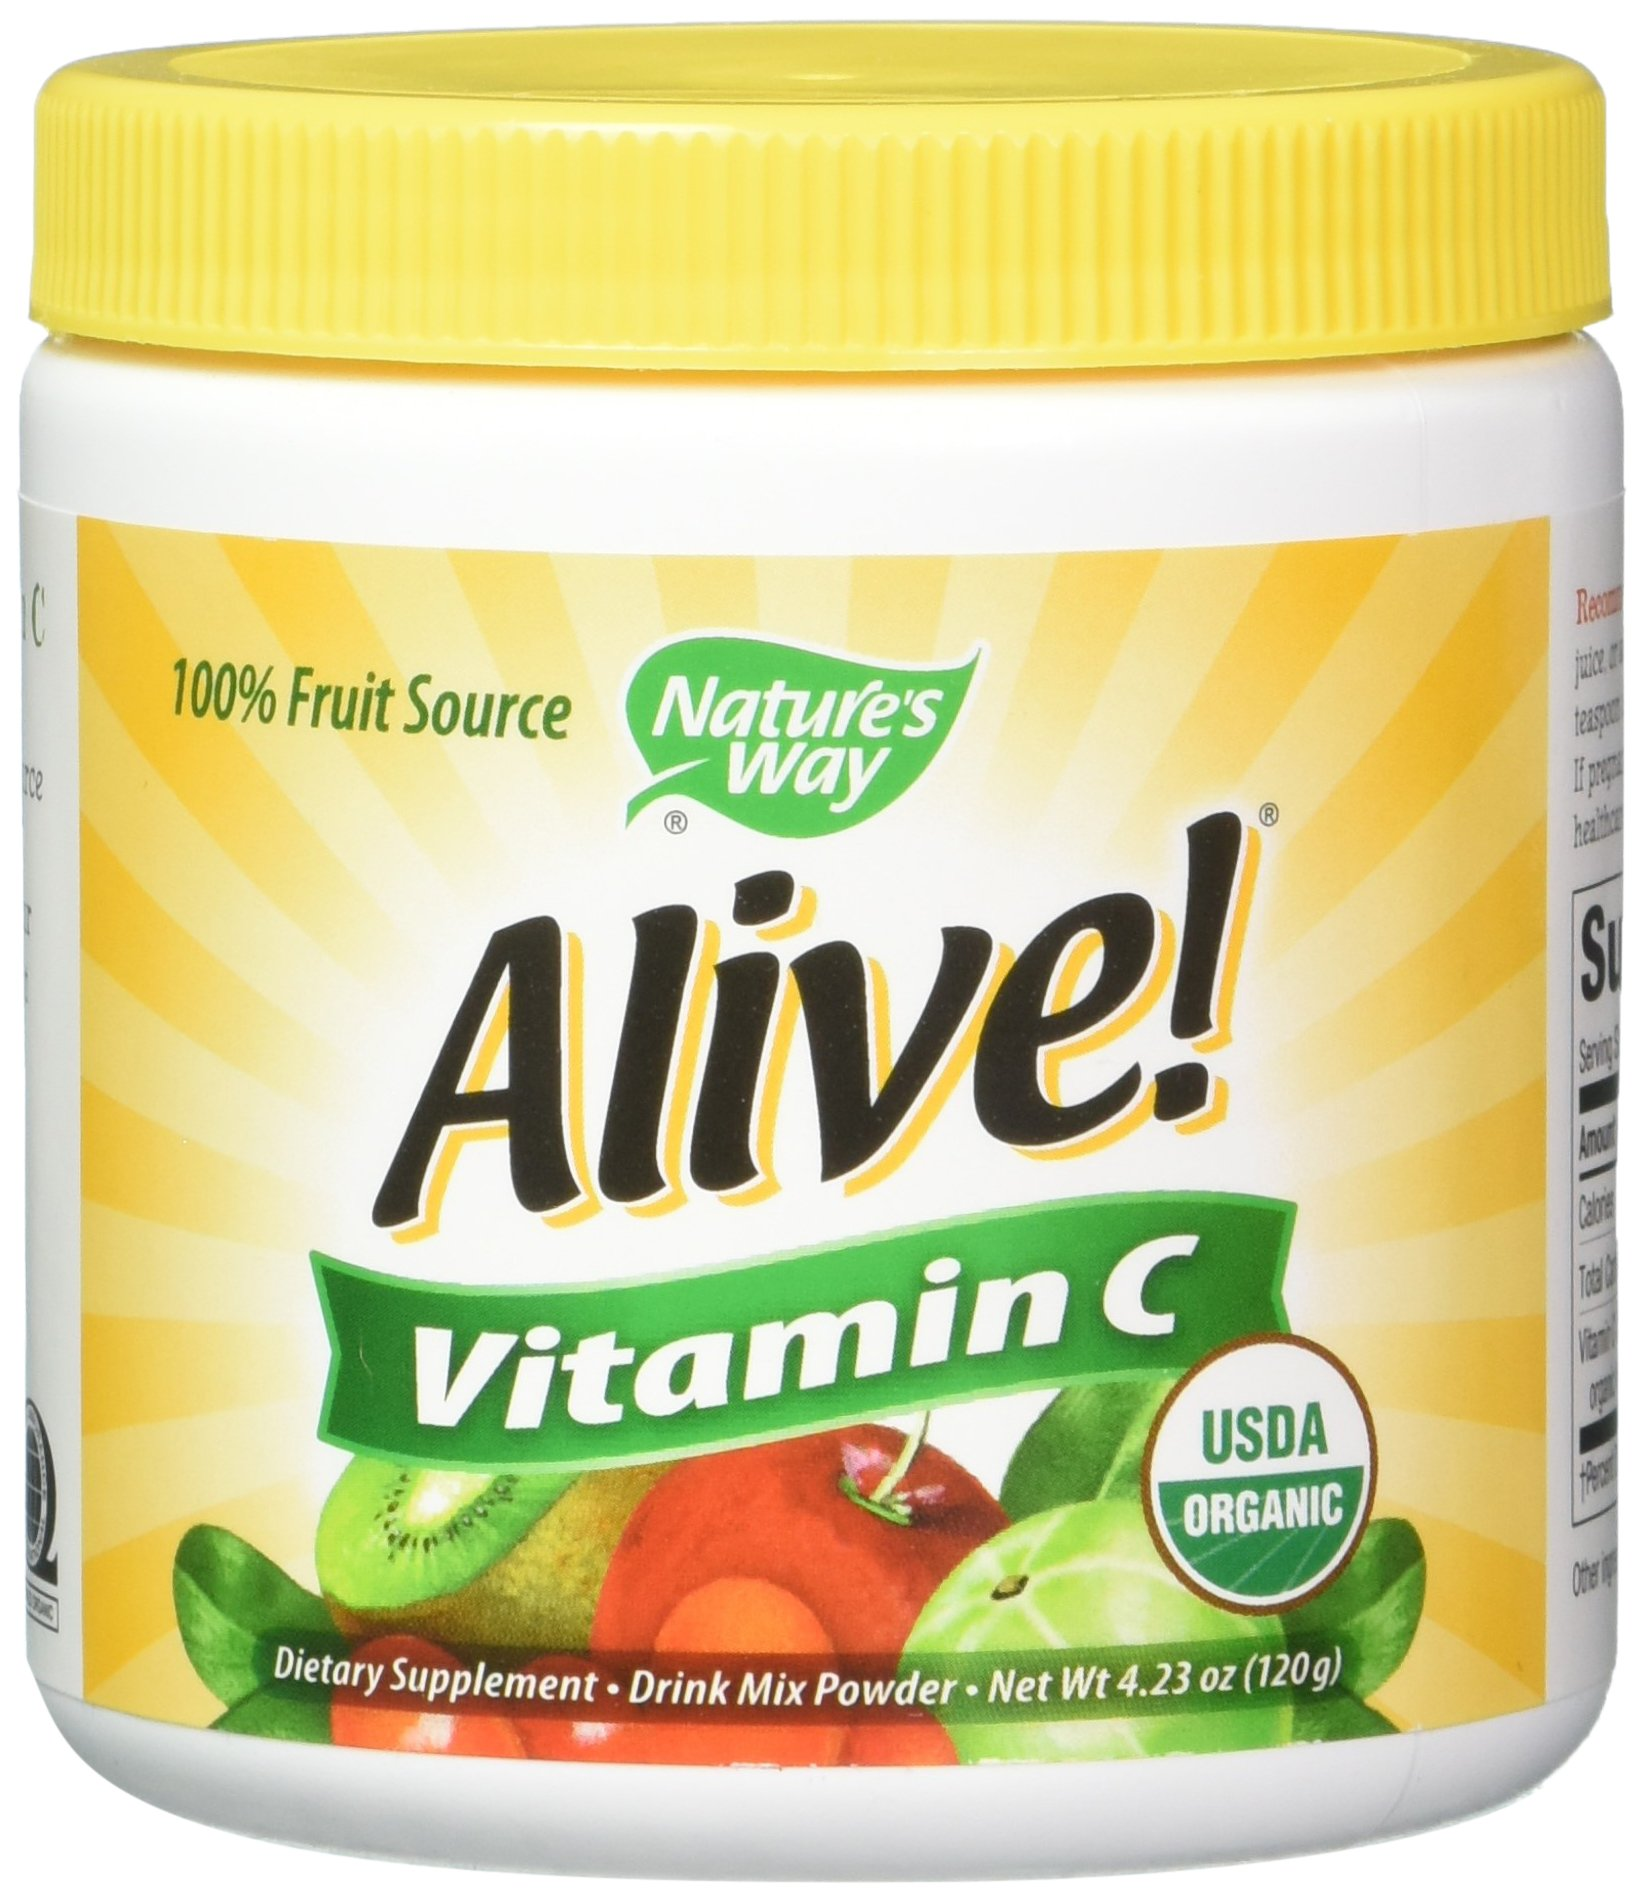 Nature's Way Alive! Vitamin C Powder, USDA Organic, 100% from Acerola, Kiwi, Lycium (Goji) Amla, Vegetarian, 4.23 Ounce, Pack of 2